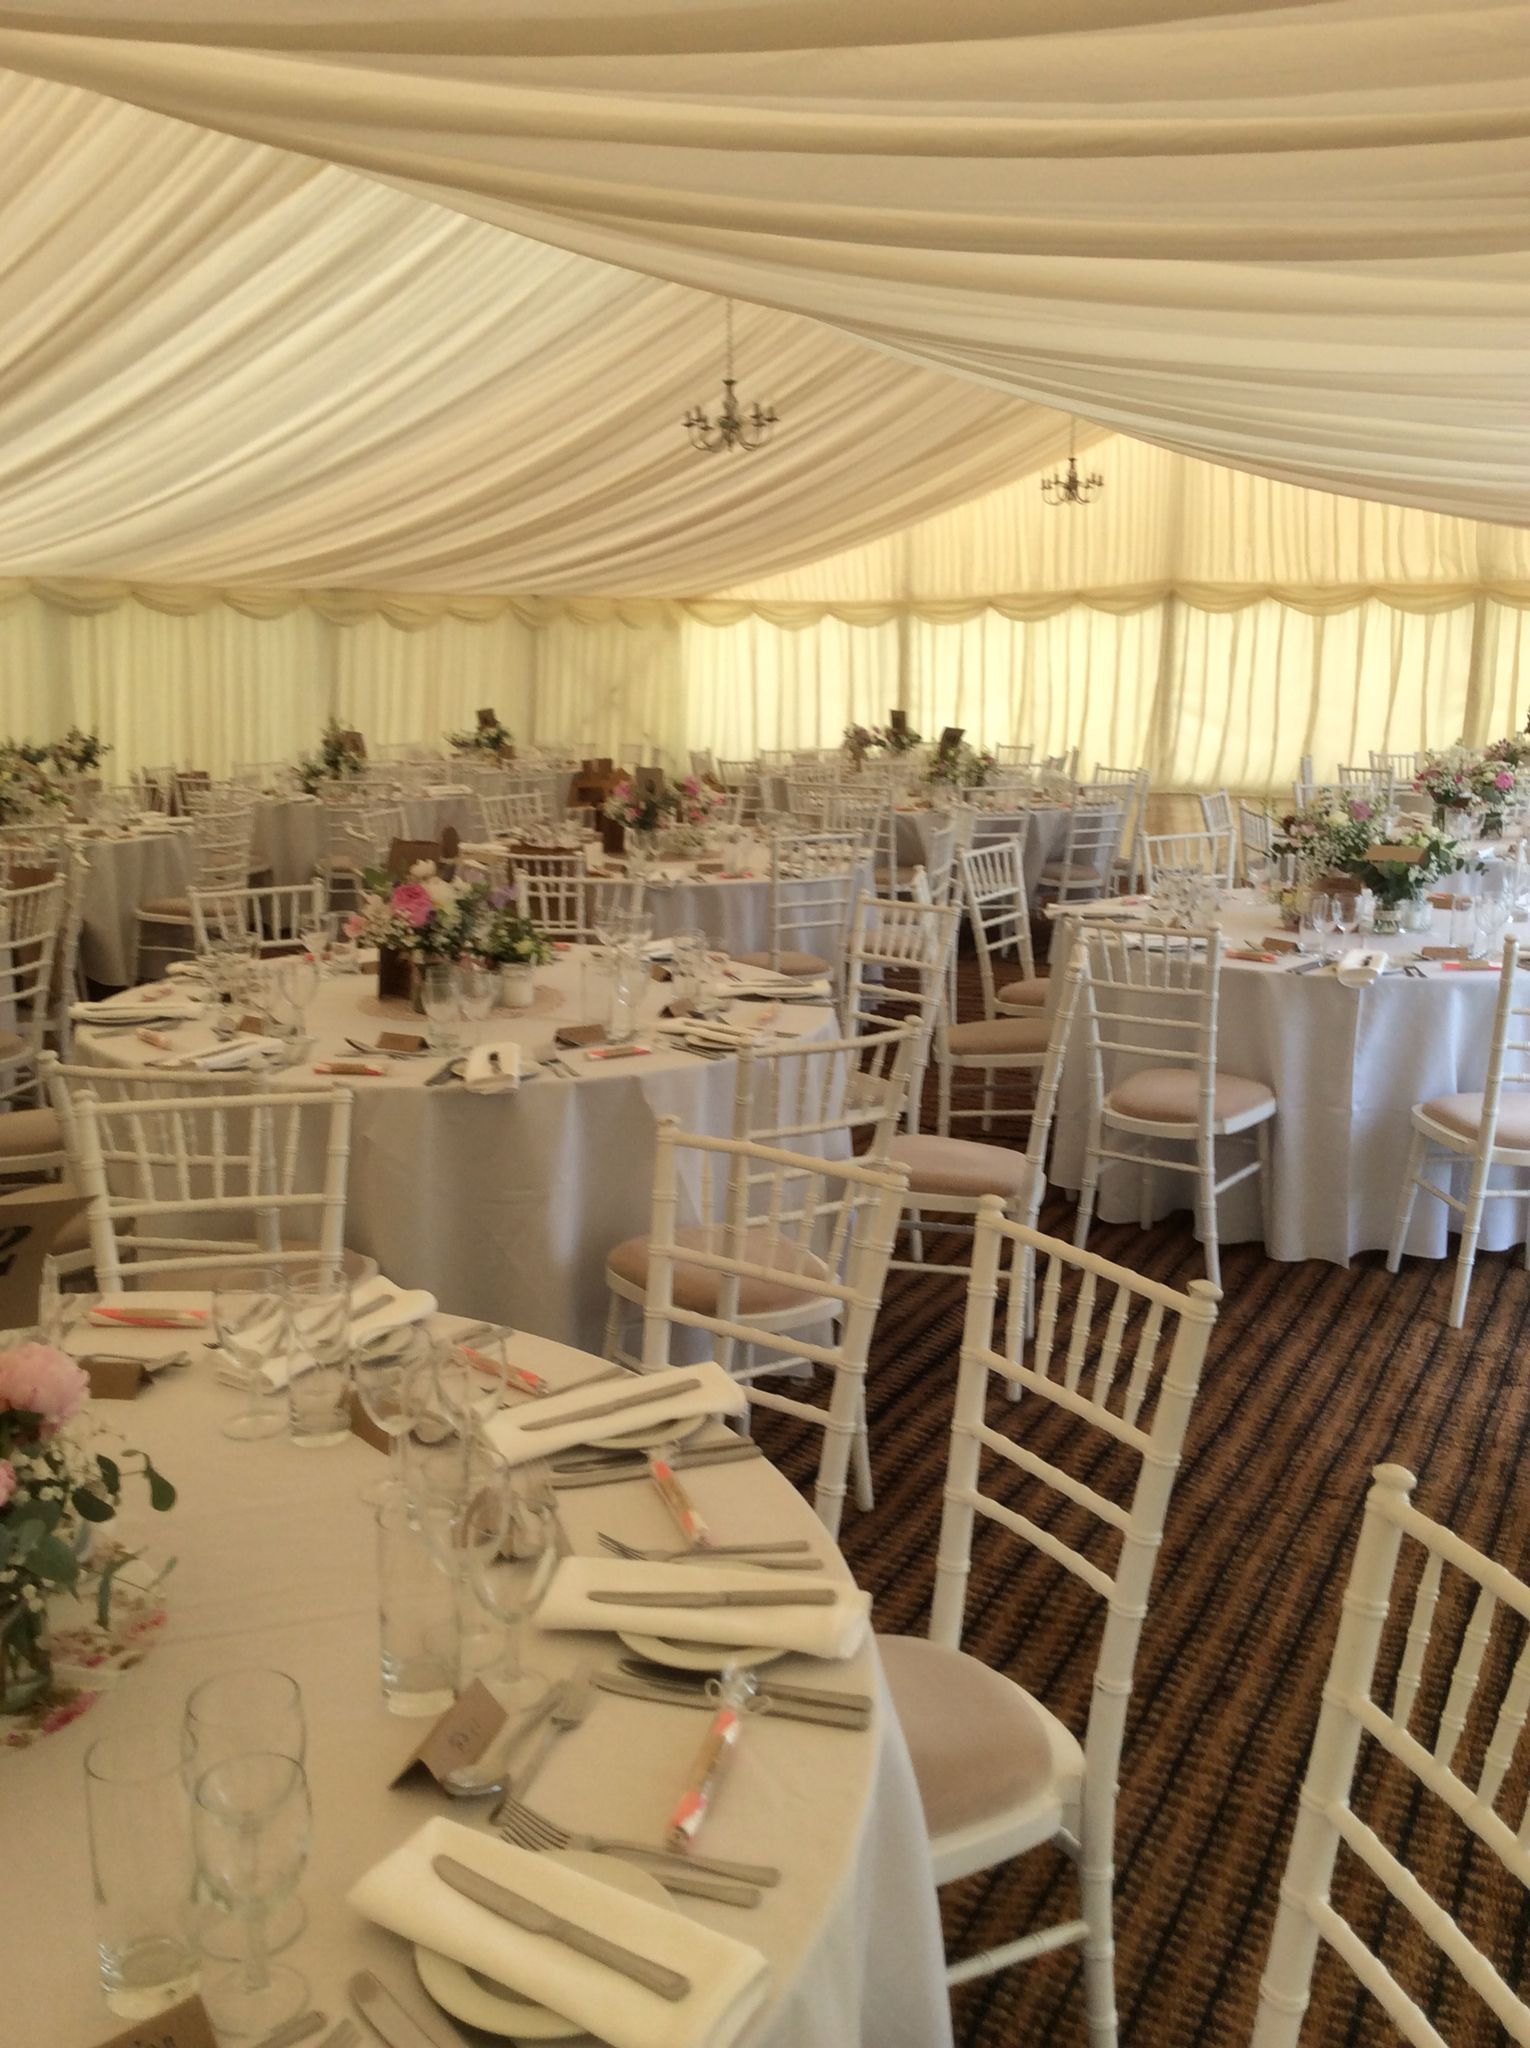 Chair Cover Hire Sussex High Backed Office Chairs Uk Chiavari From Pollen4hire Firle Place Marquee Wedding